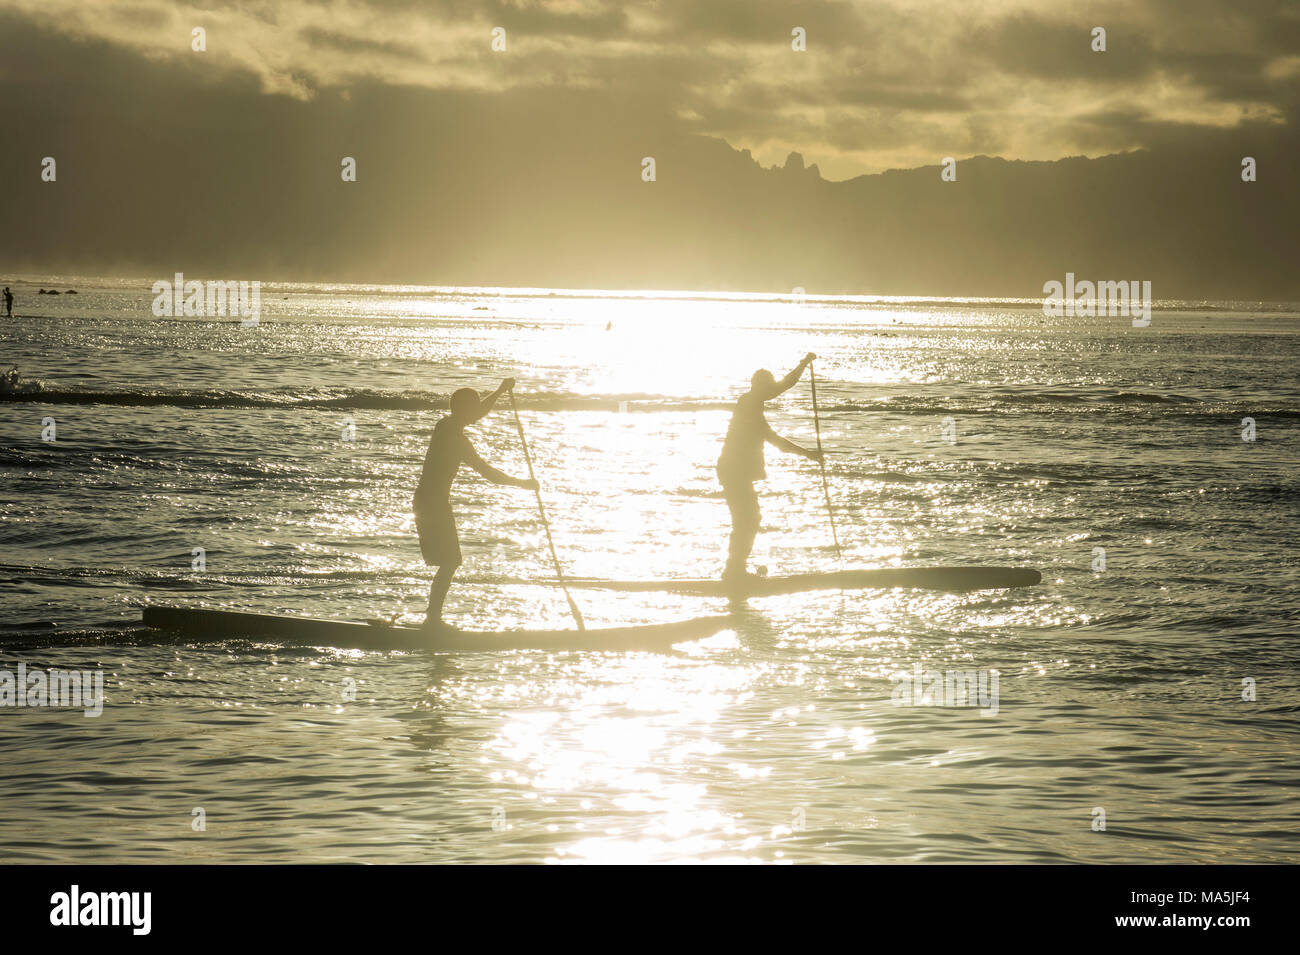 Stand up paddlers working out at sunset, Papeete, Tahiti, French Polynesia - Stock Image